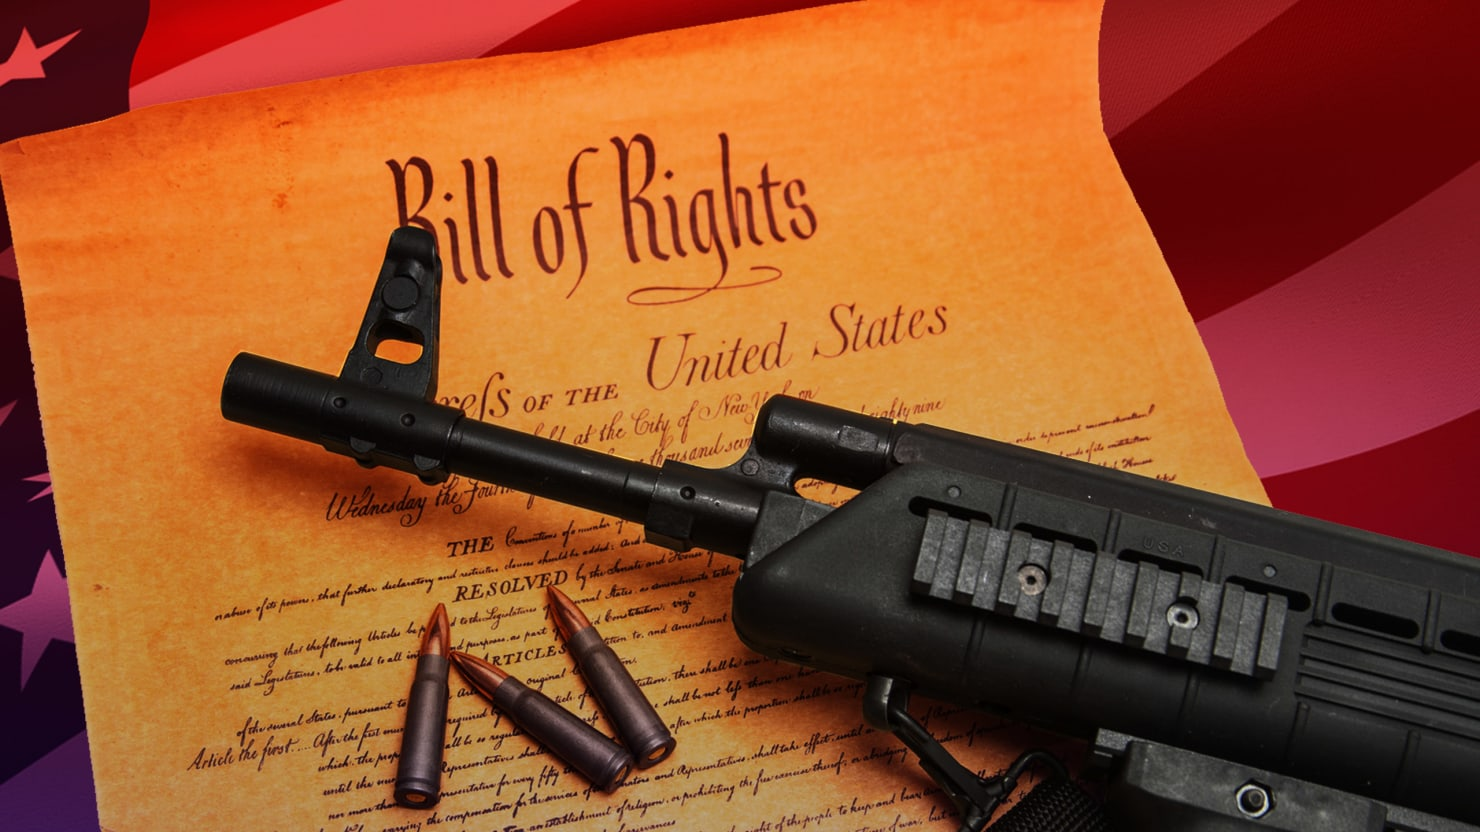 the argument for and against gun laws essay 10 arguments for and against gun control stricter gun control laws have become the here are ten of the most frequently discussed arguments on both.